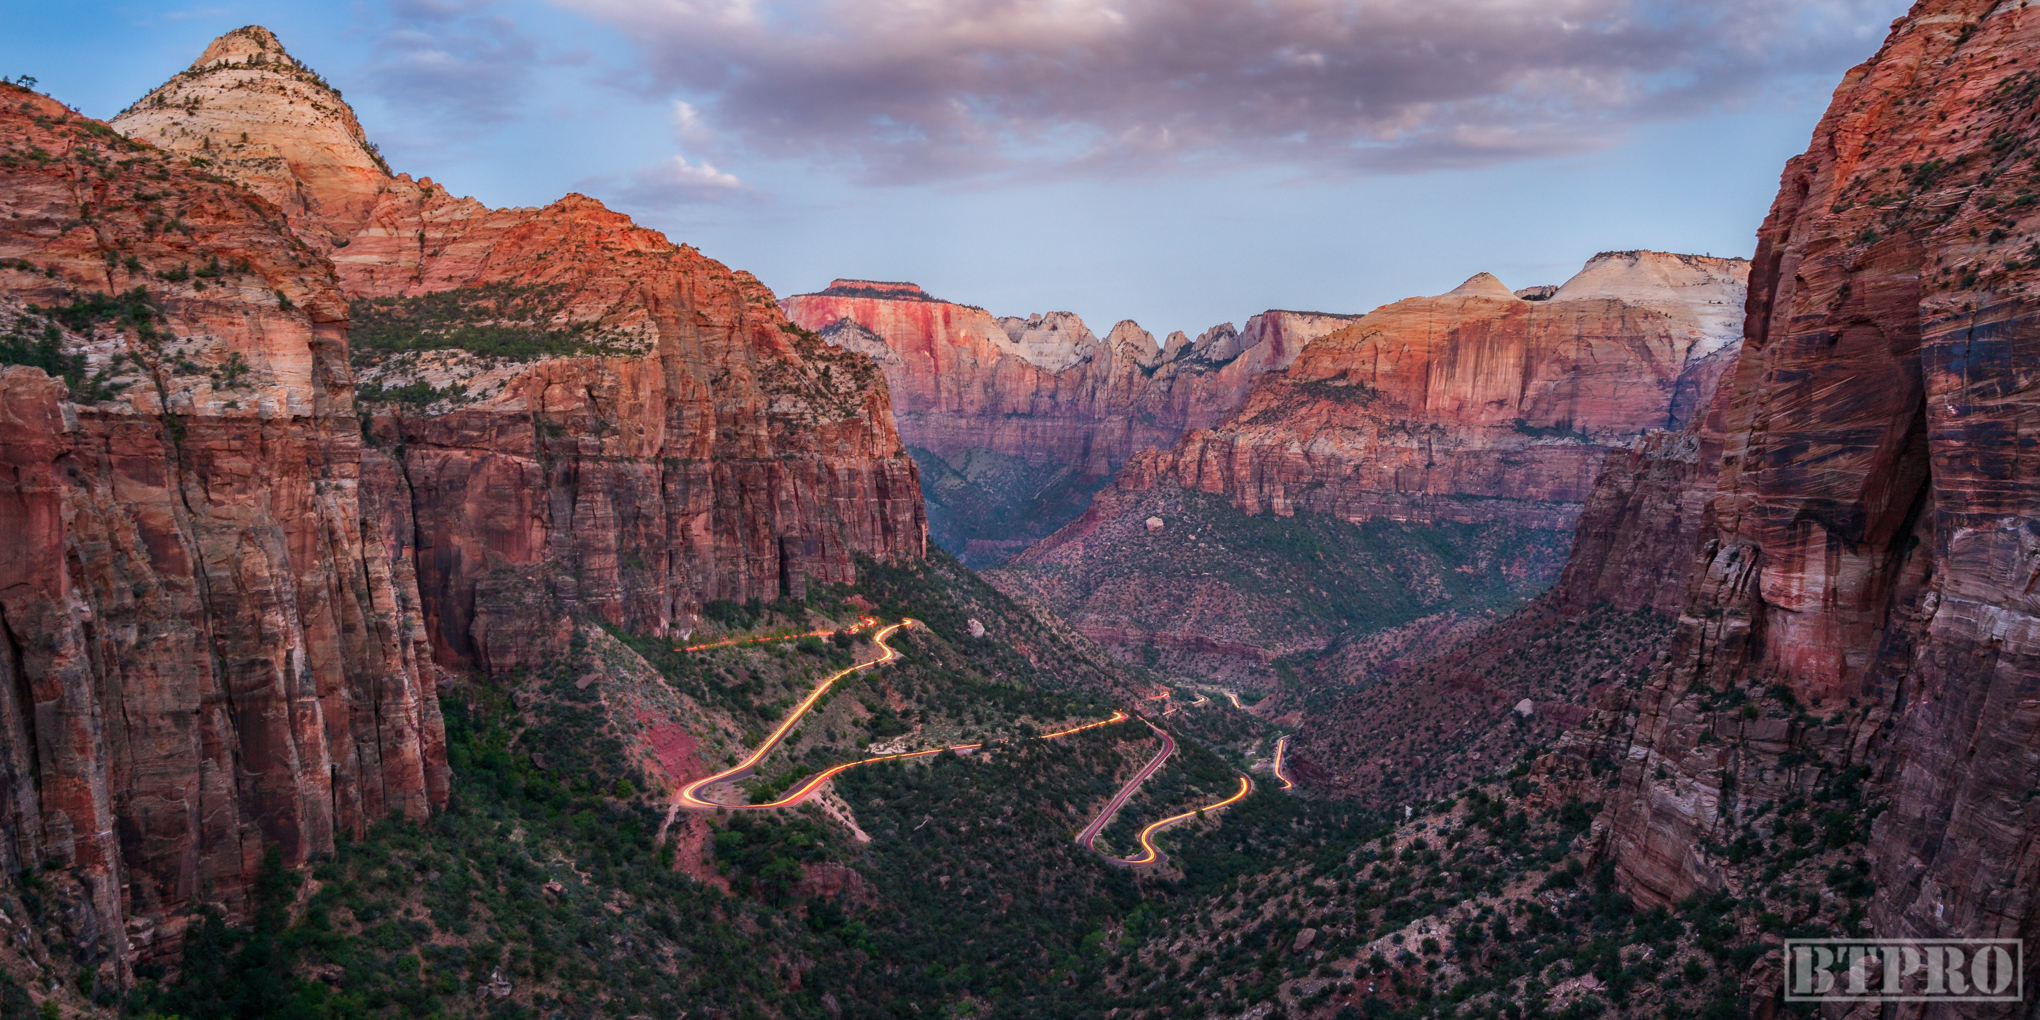 Sunrise at Canyon Overlook